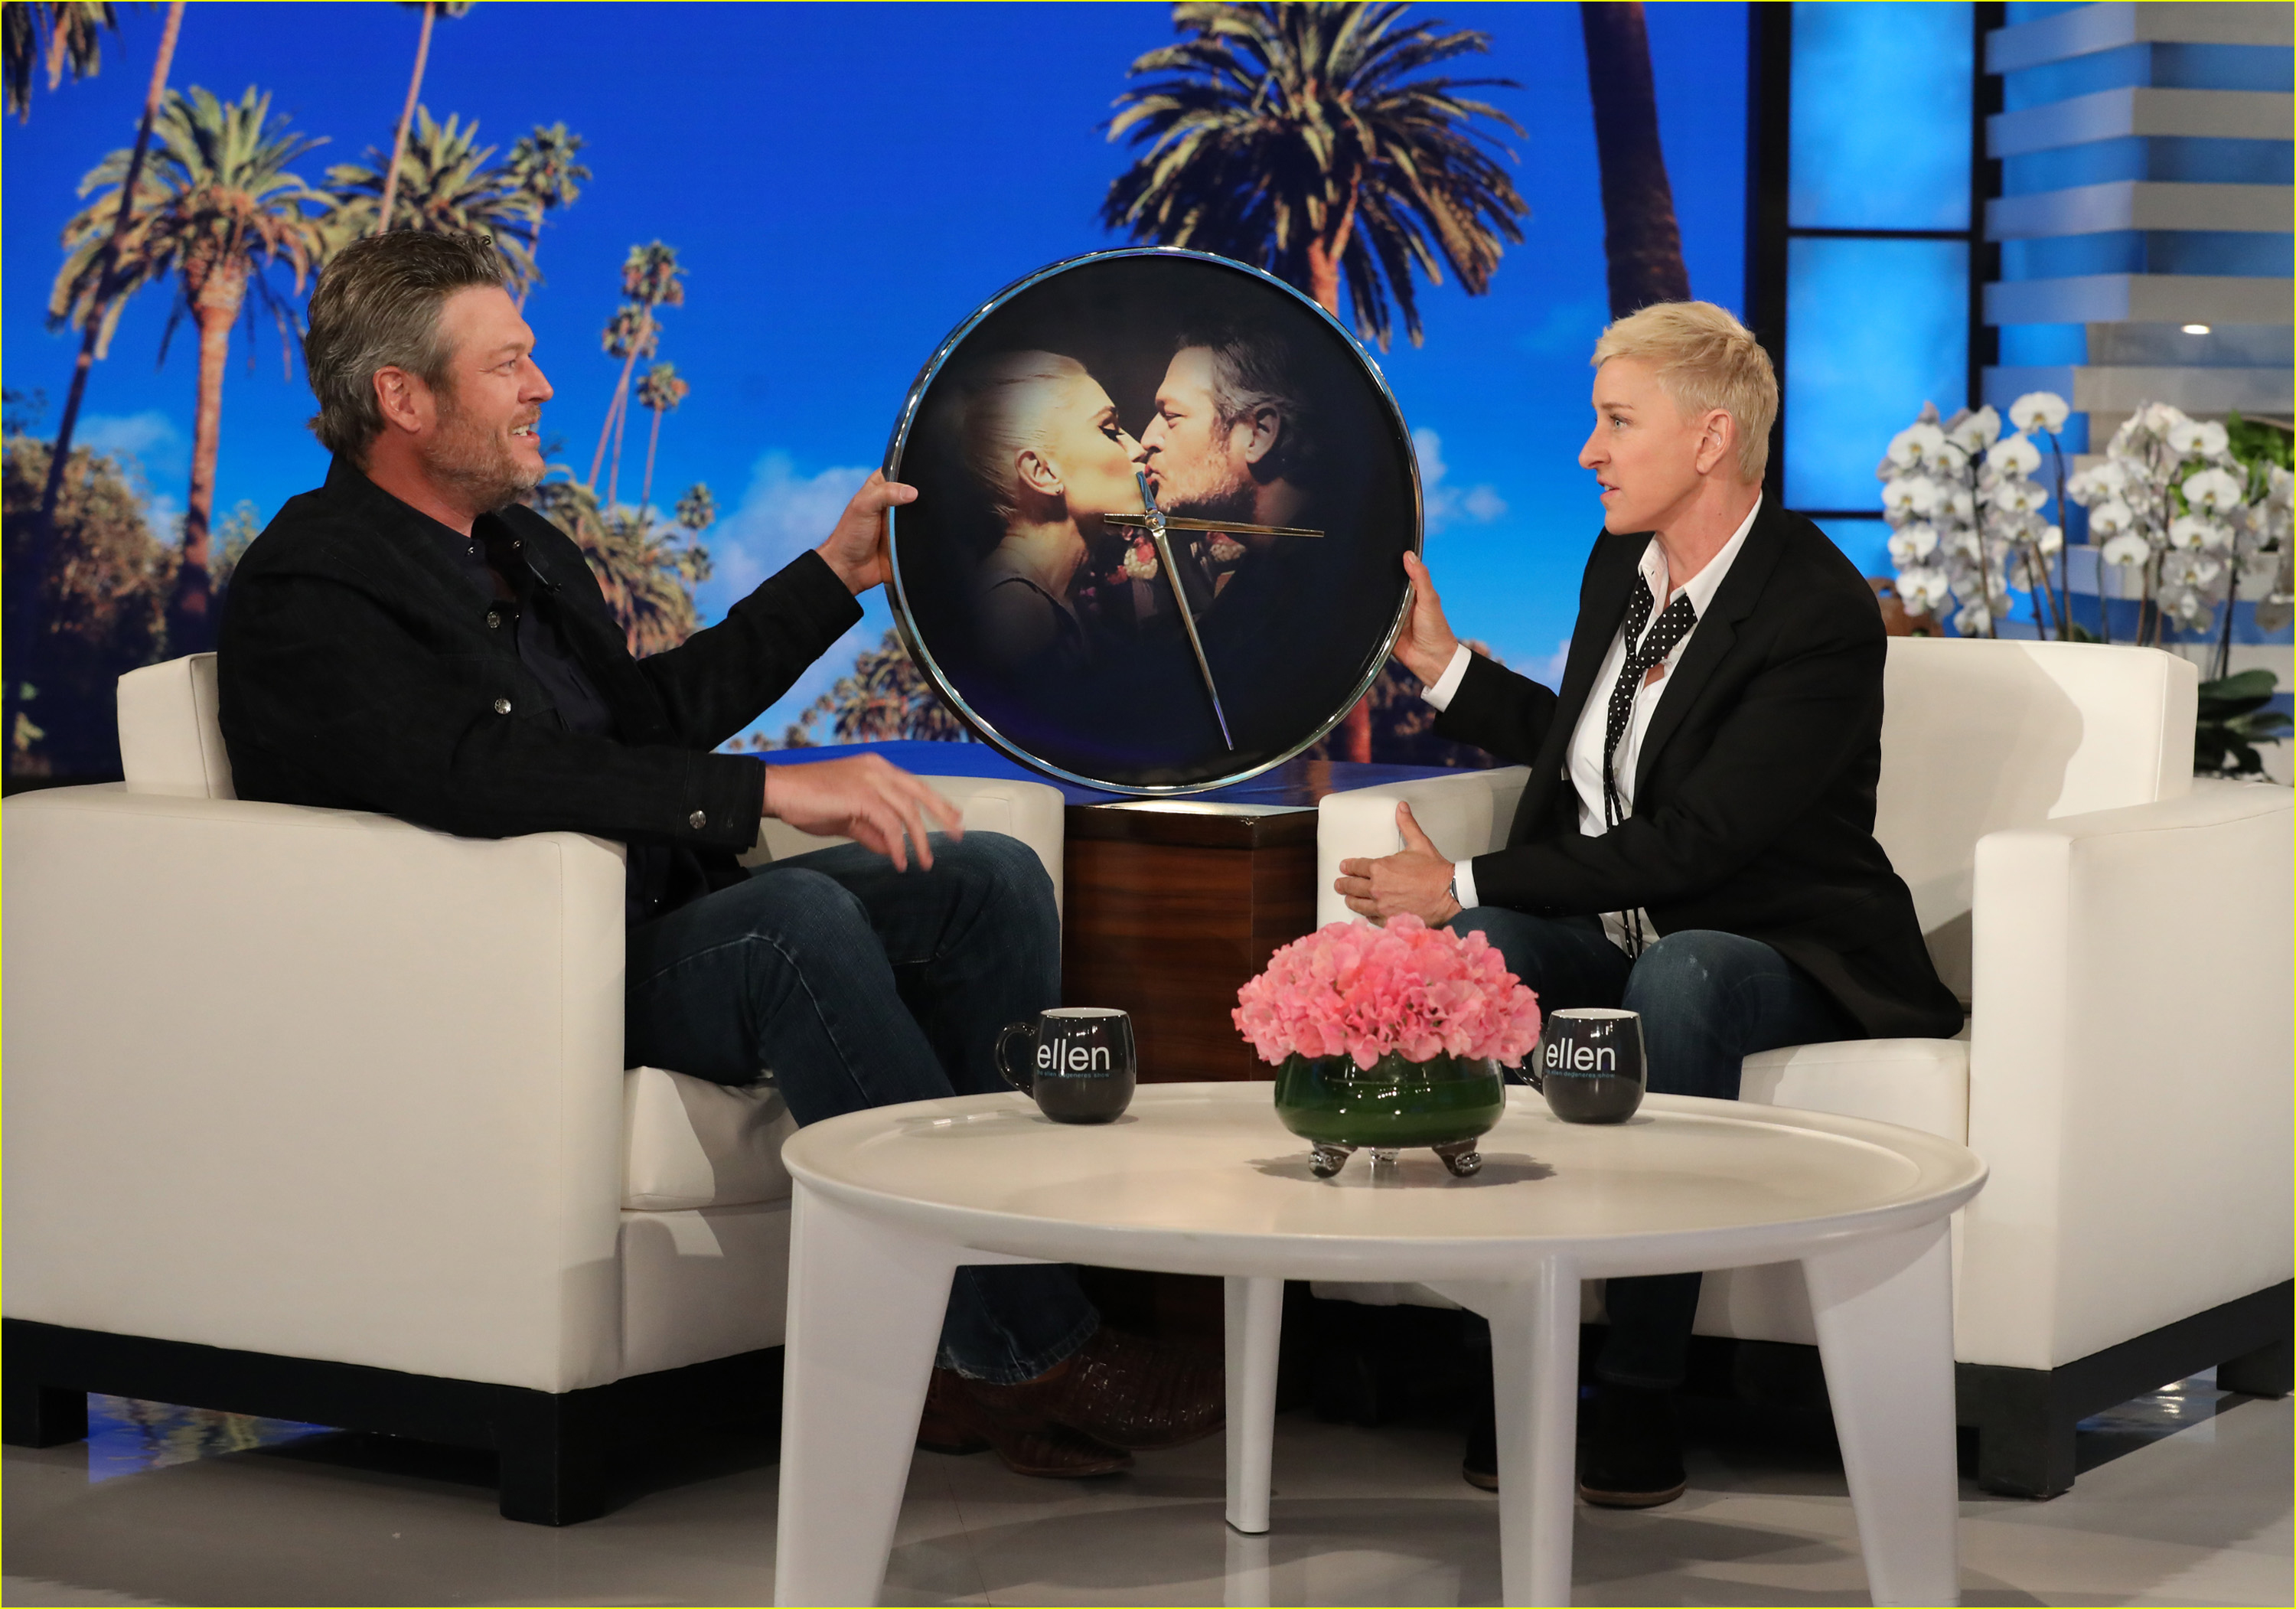 blake shelton gets pre engagement gift from ellen degeneres 024280070